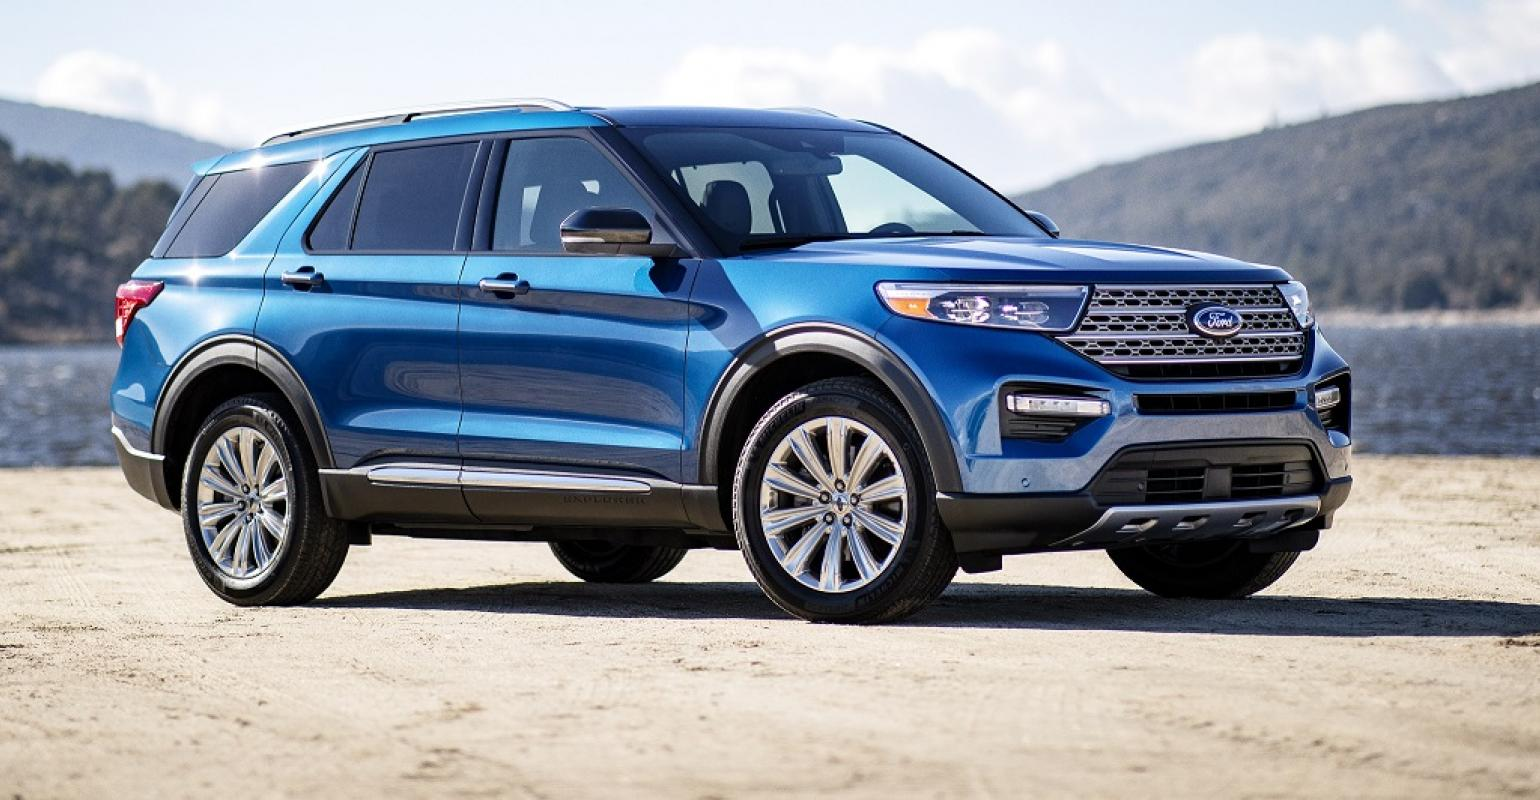 2020 Ford Expedition Platinum, Diesel, Price, Specs >> 2020 Ford Explorer Return Of The Rwd Suv Wardsauto